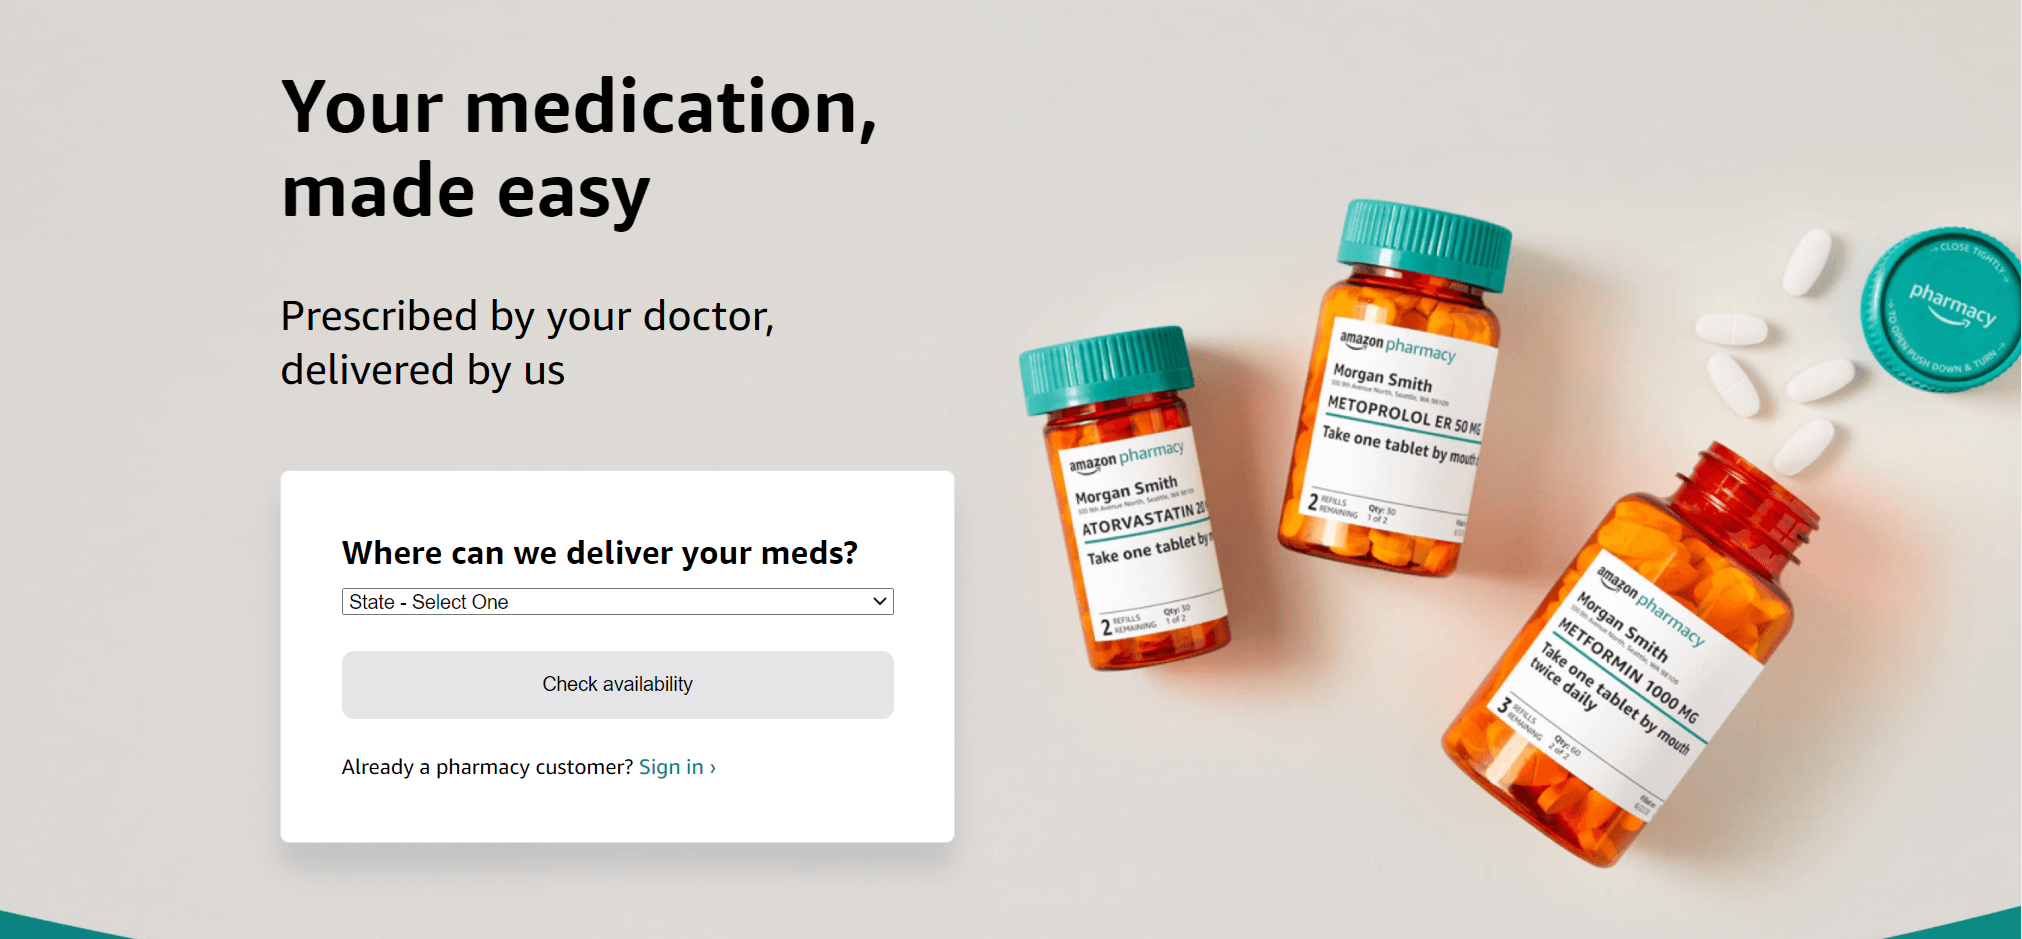 Amazon Pharmacy: The digital pharmacy opens in the USA, will it reach the rest of the world?